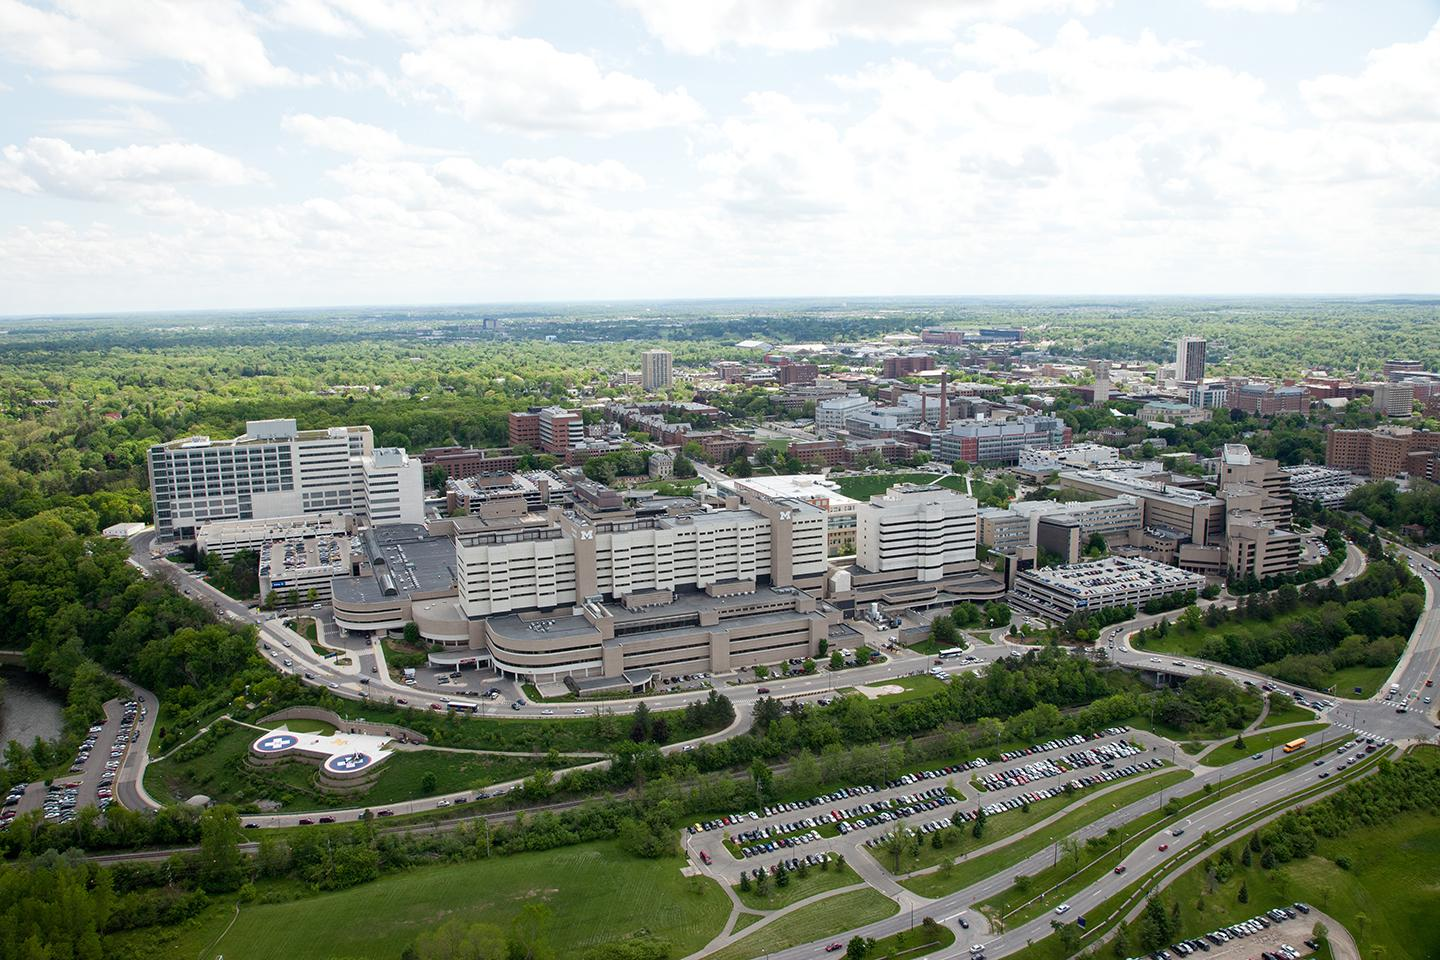 Michigan Medicine campus